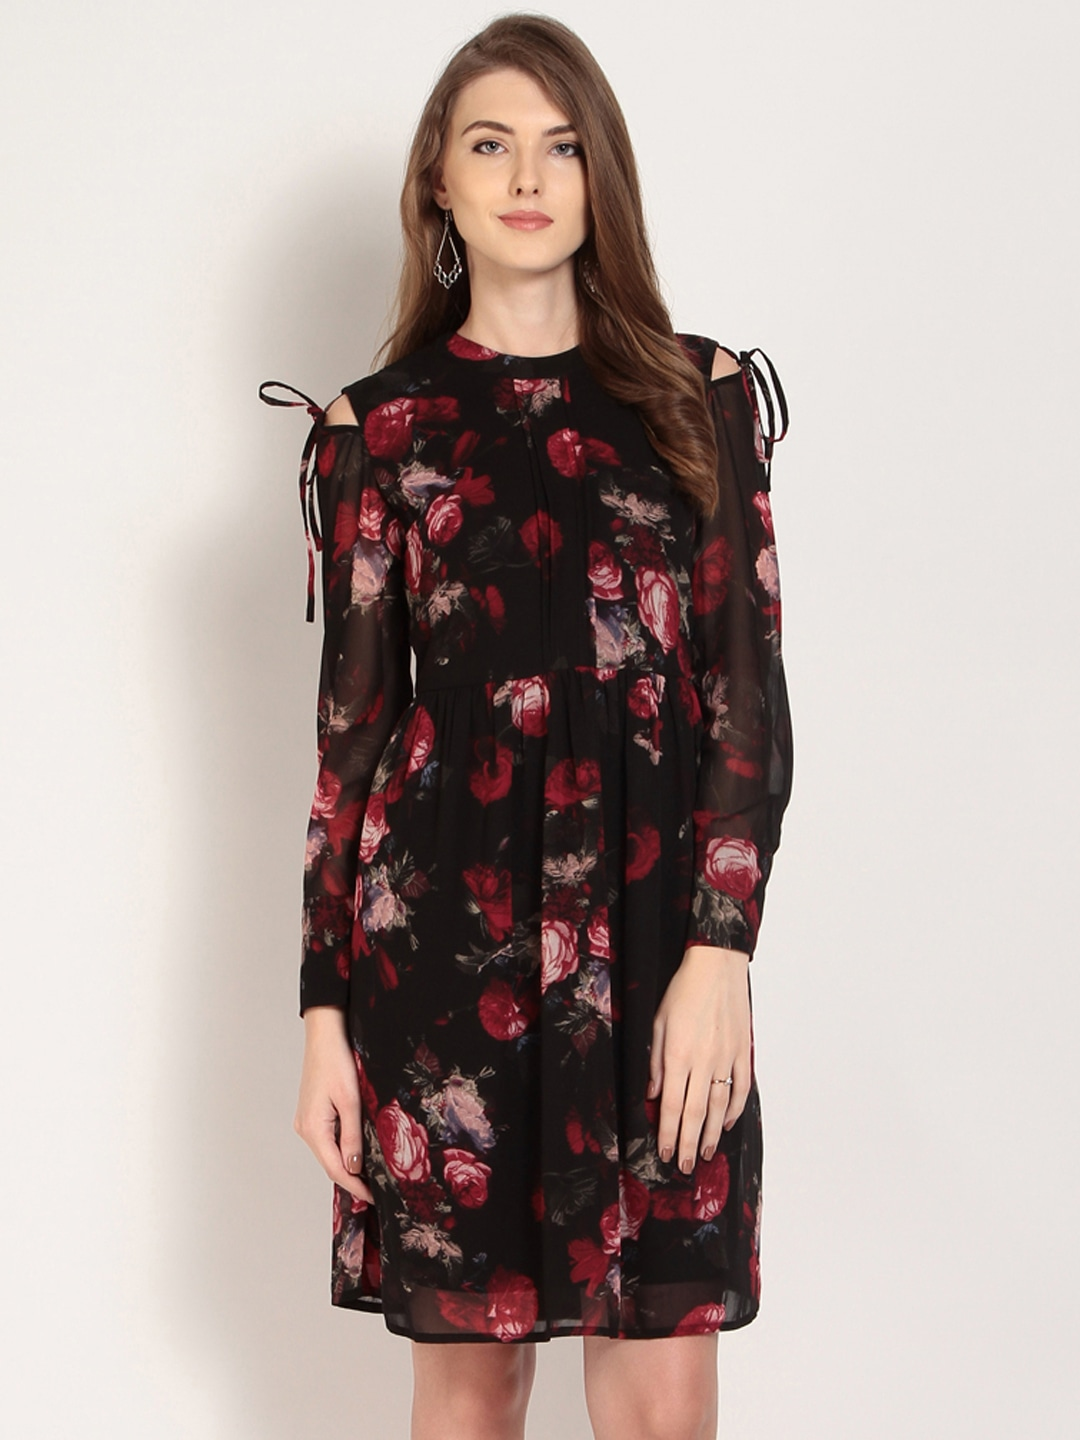 Girlistan - Holiday Dresses For Rectangle Body Shape. How to choose one